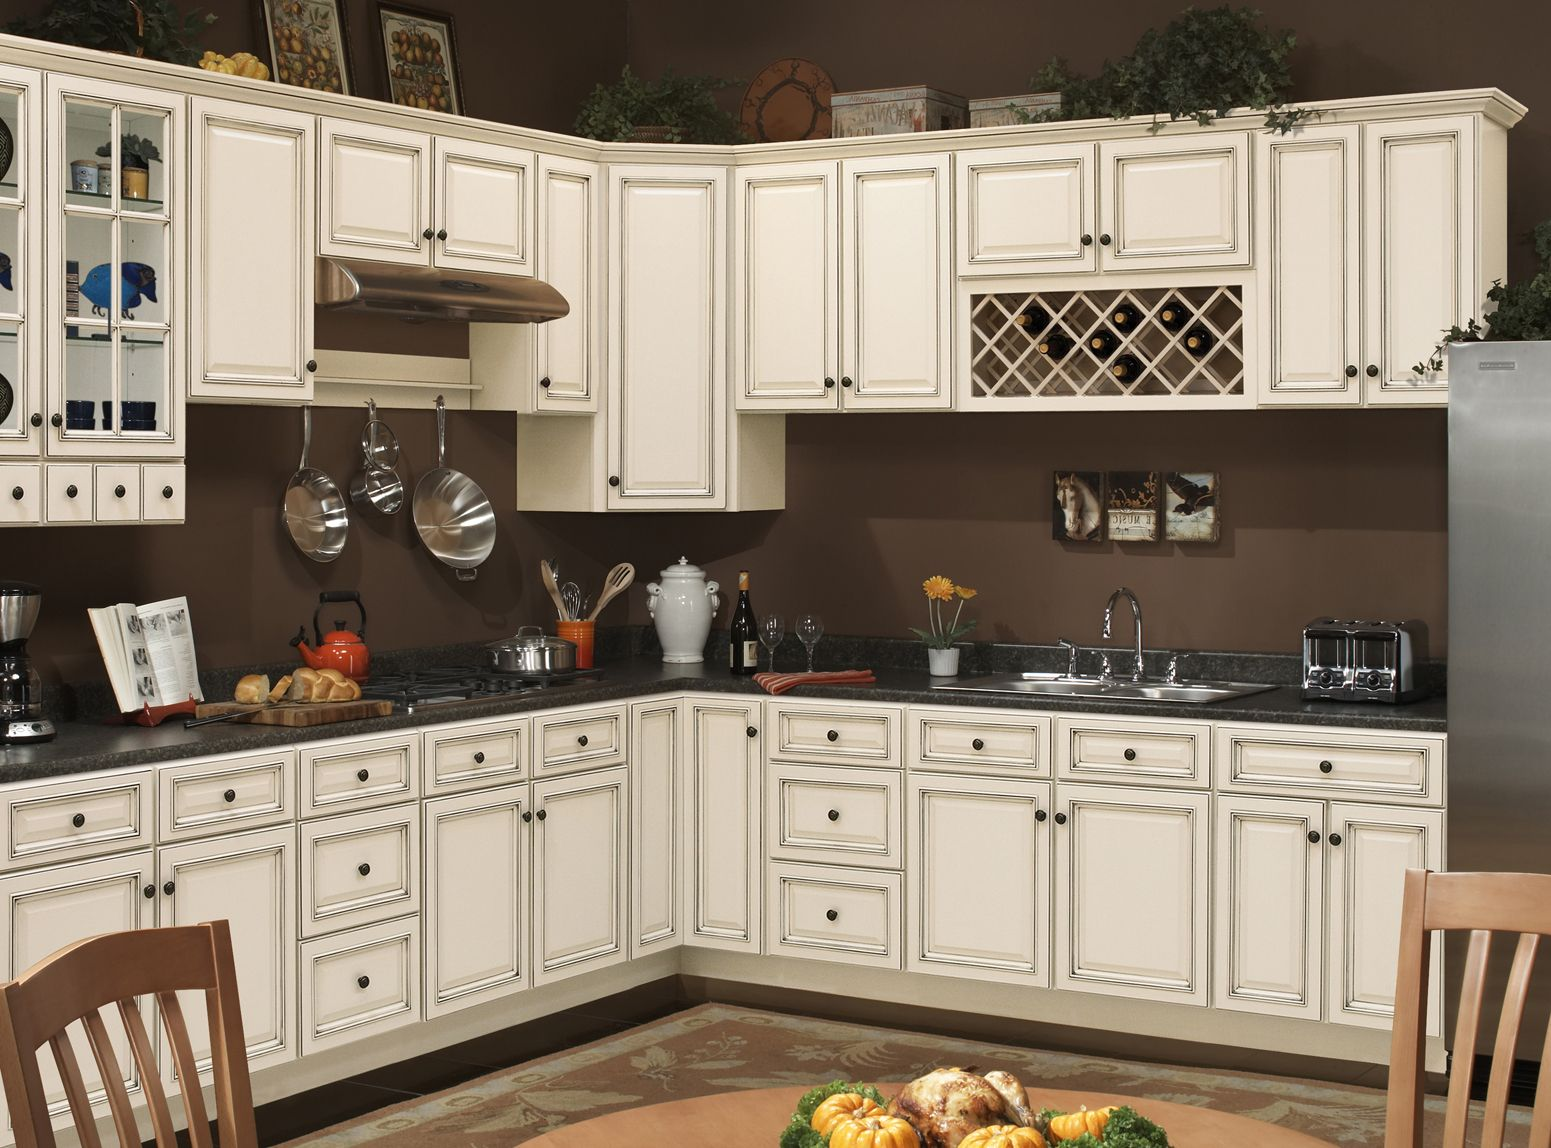 Pin By Sunny Wood On Sunny Wood Official Pinterest Board Kitchen Cabinets Kitchen Interior Kitchen Remodel